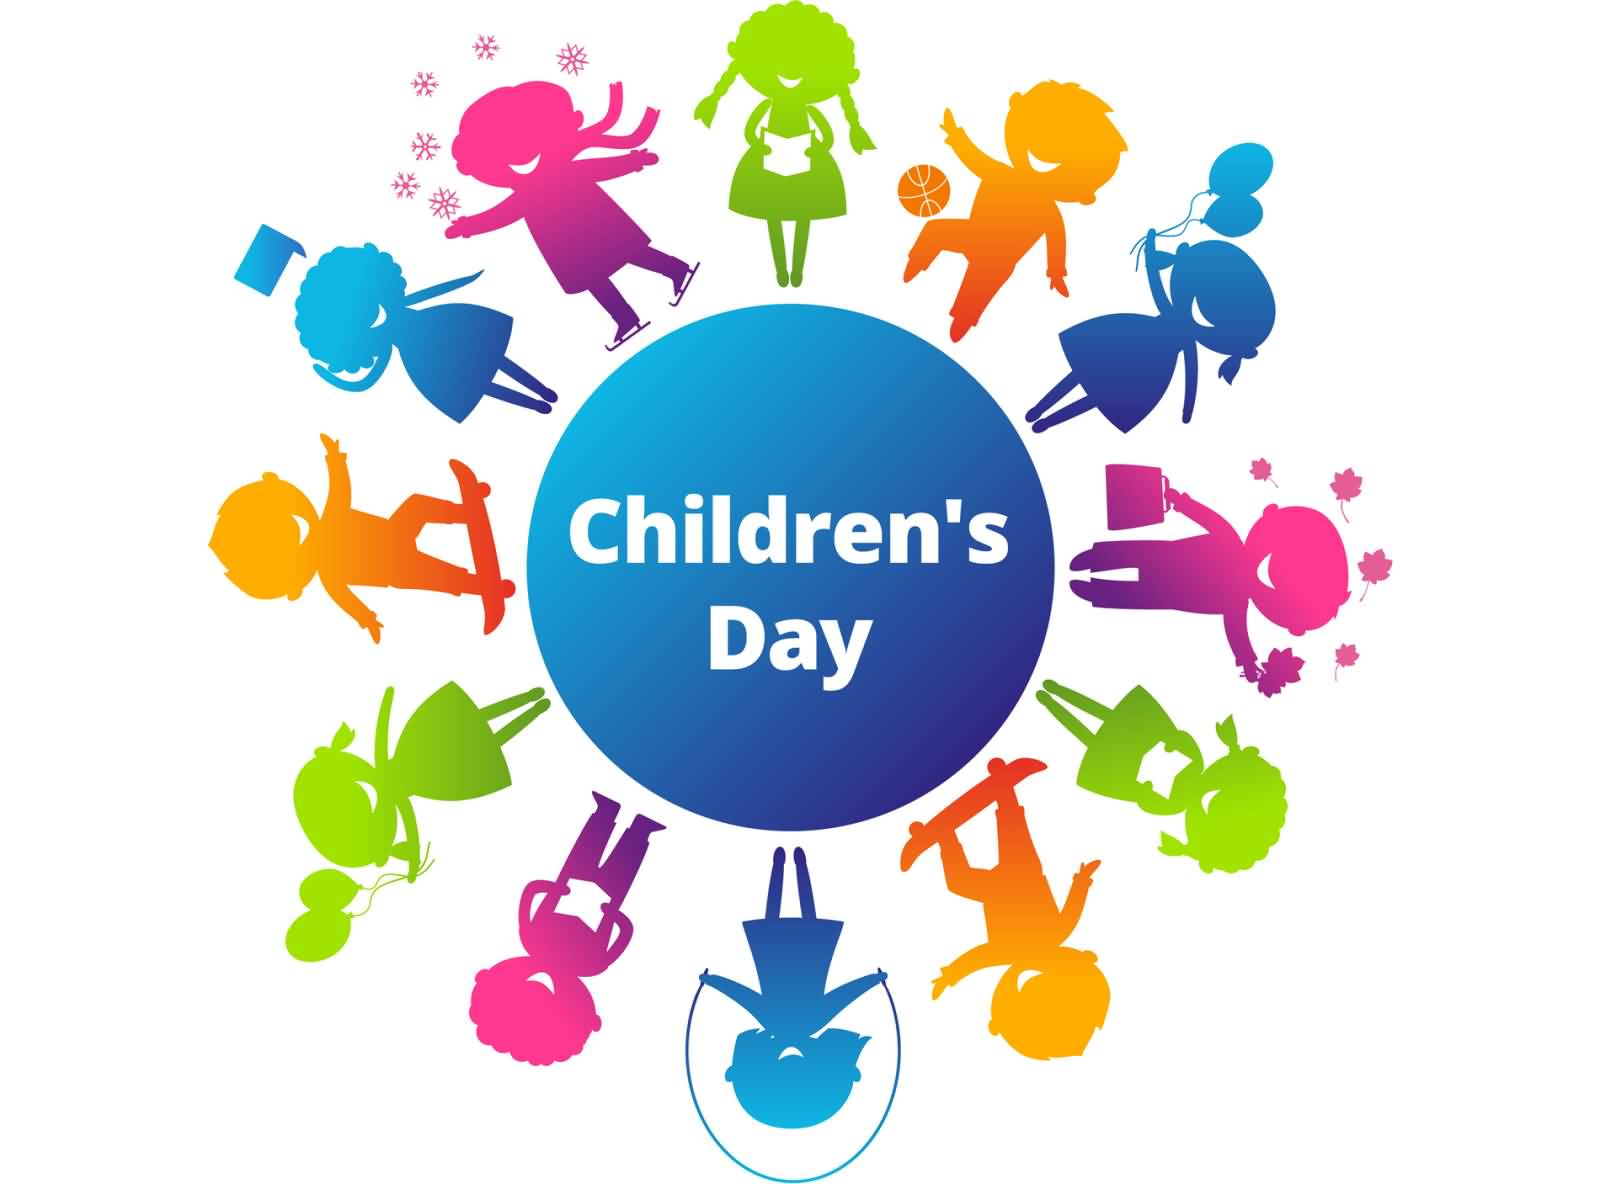 55 Very Beautiful Children's Day Wish Images And Pictures.